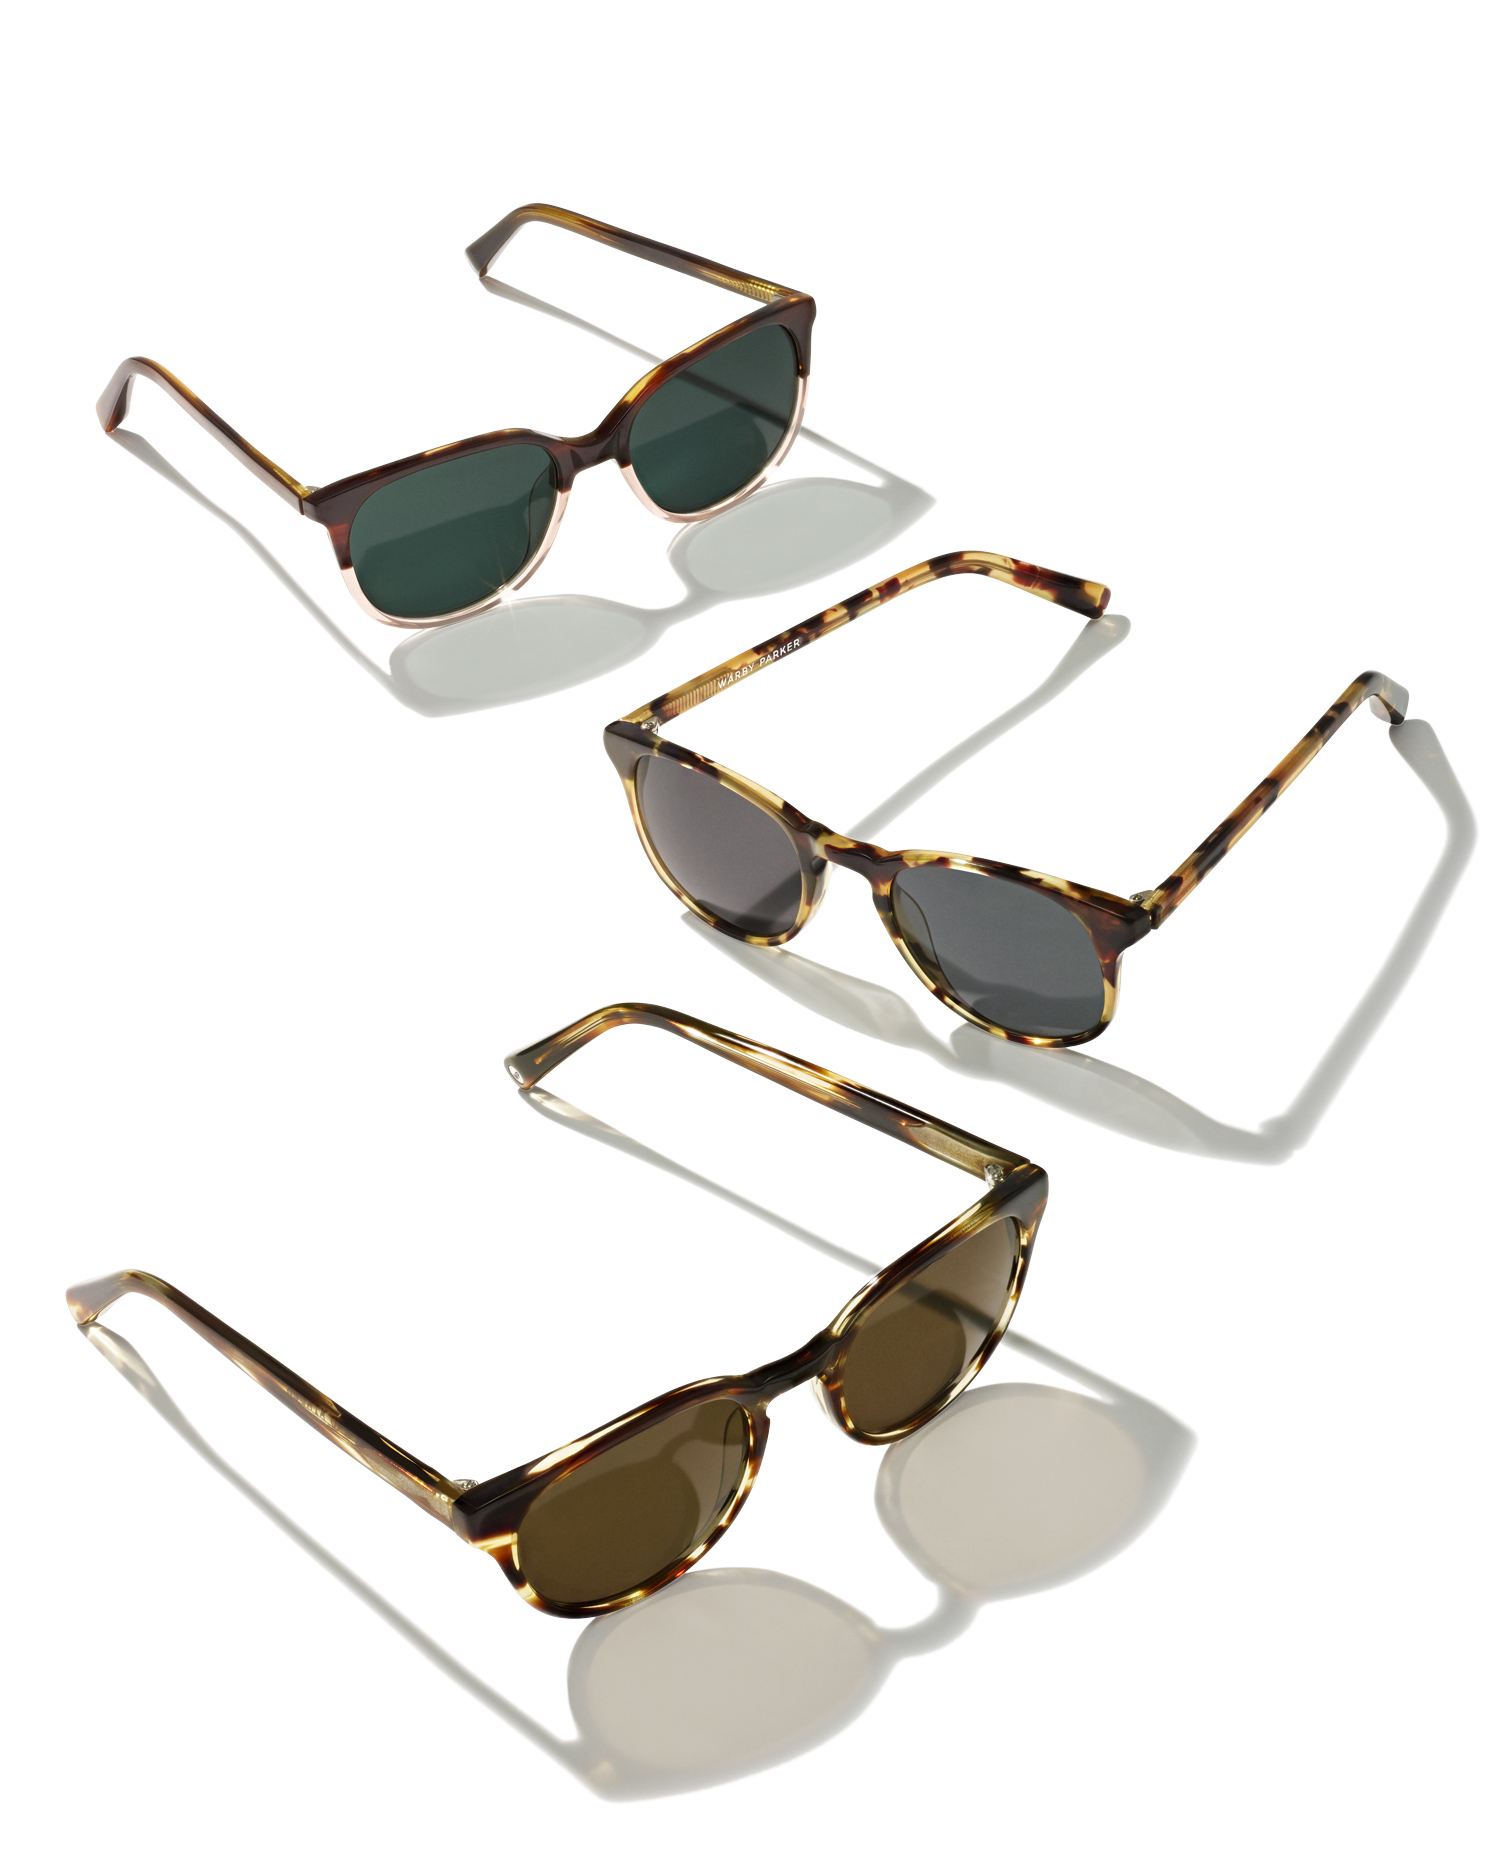 Sunglasses in different shapes and colors, by Warby Parker.